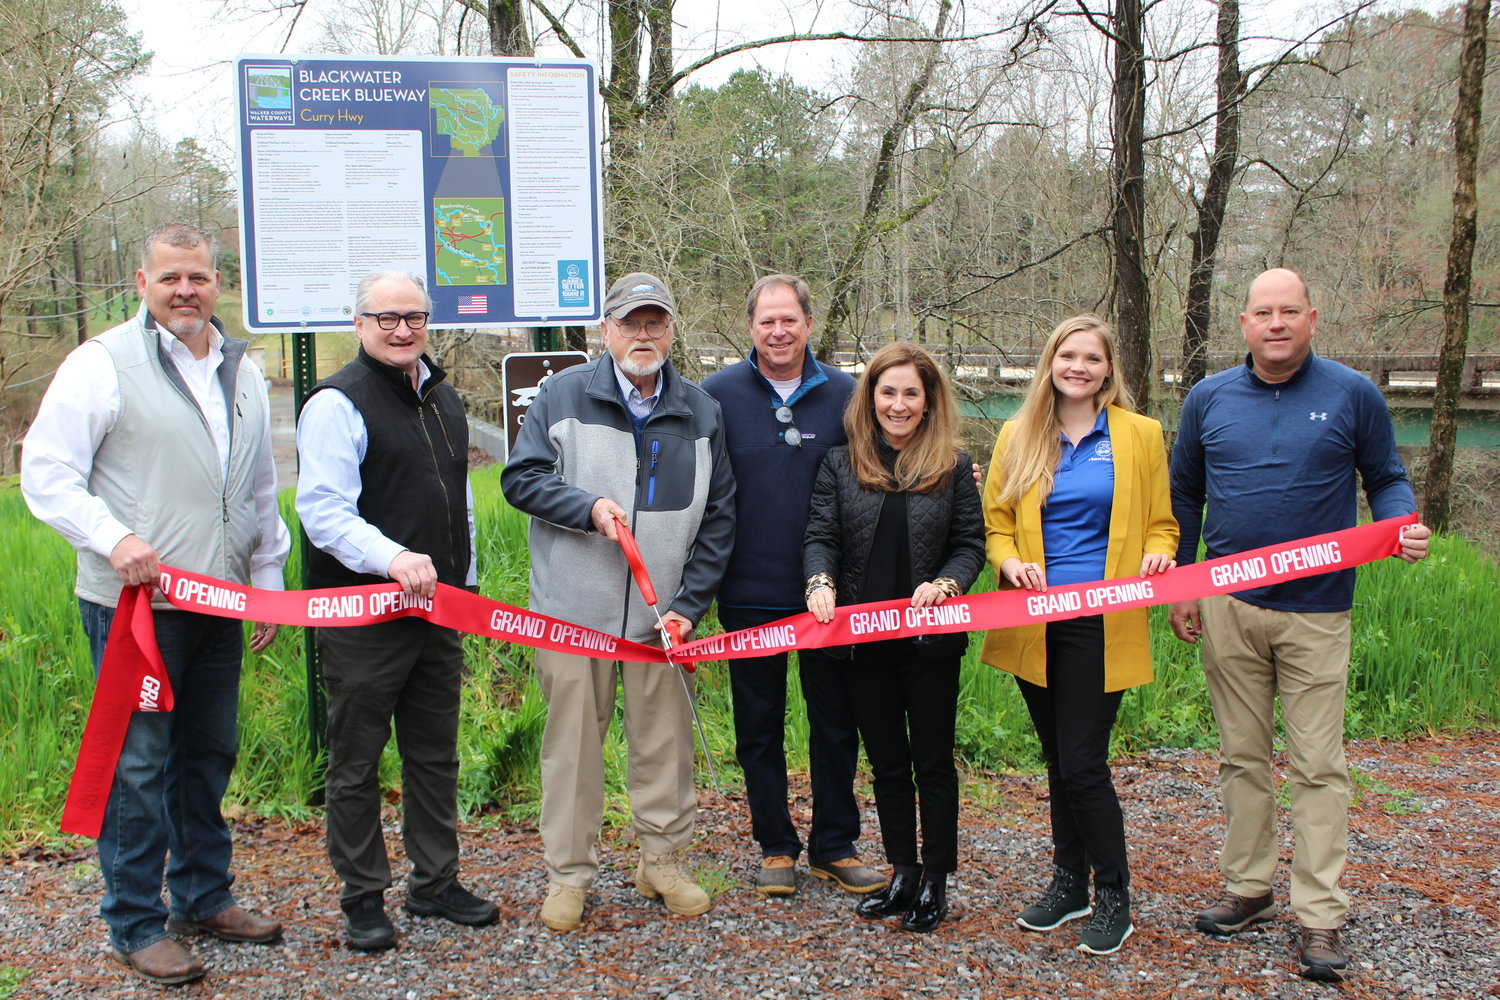 A number of officials celebrated the opening of the Curry Highway Blackwater Creek access point on Thursday. They included, from left, Steven Aderholt, Paul Kennedy, Jerry Bishop, Mike and Jenny Short, Elyse Peters and Jeff Burrough.